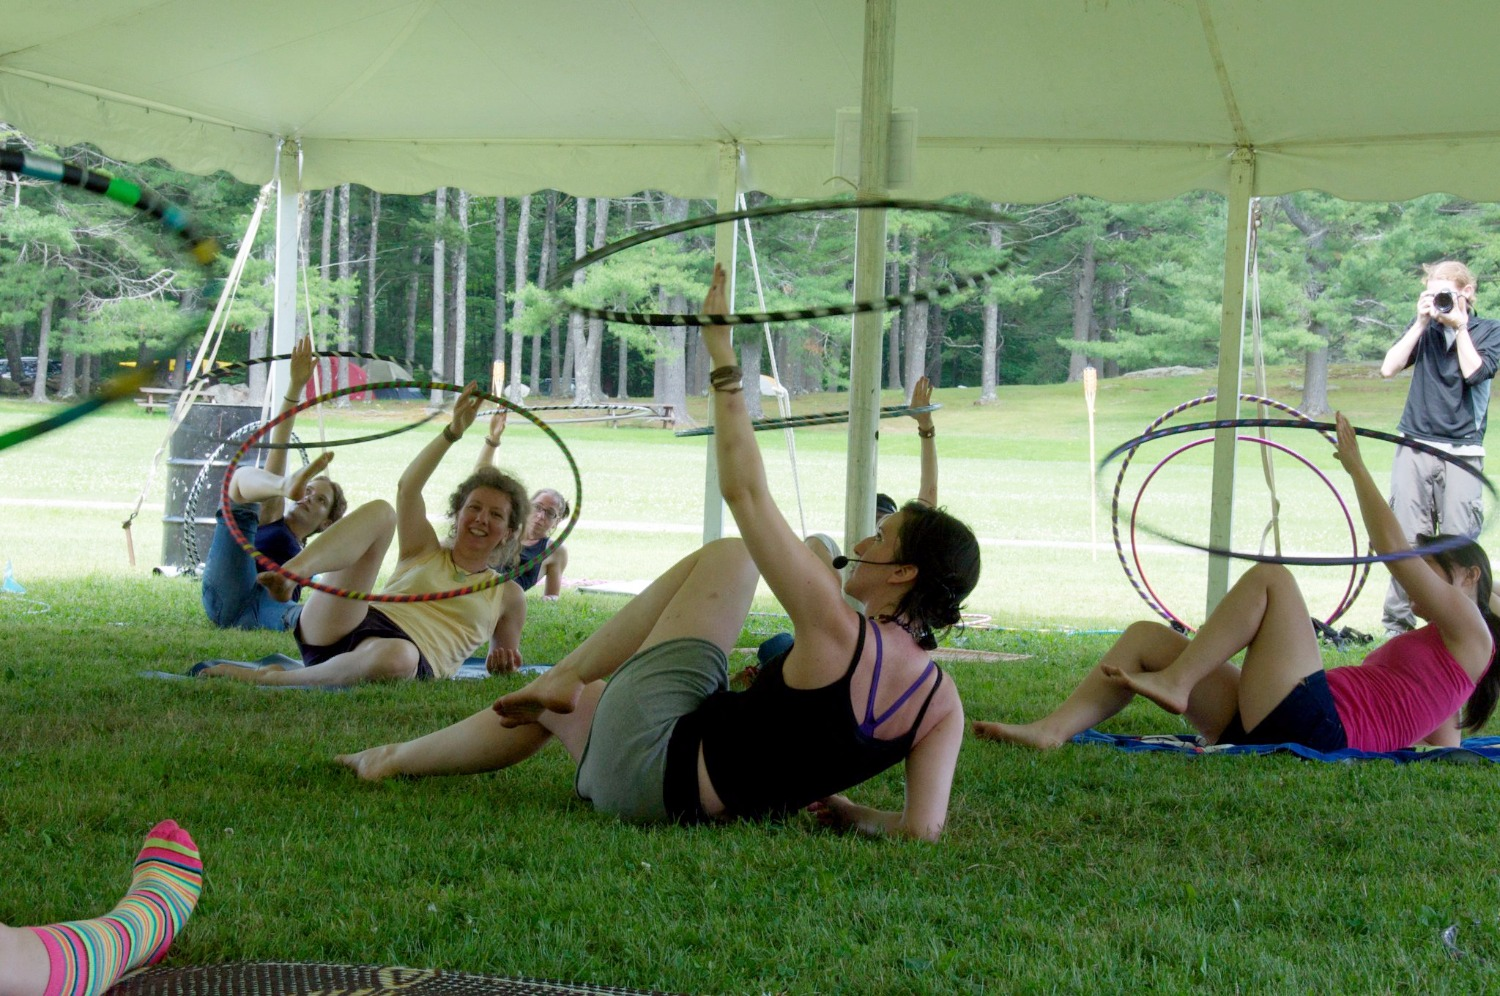 Lulu Hoop teaching